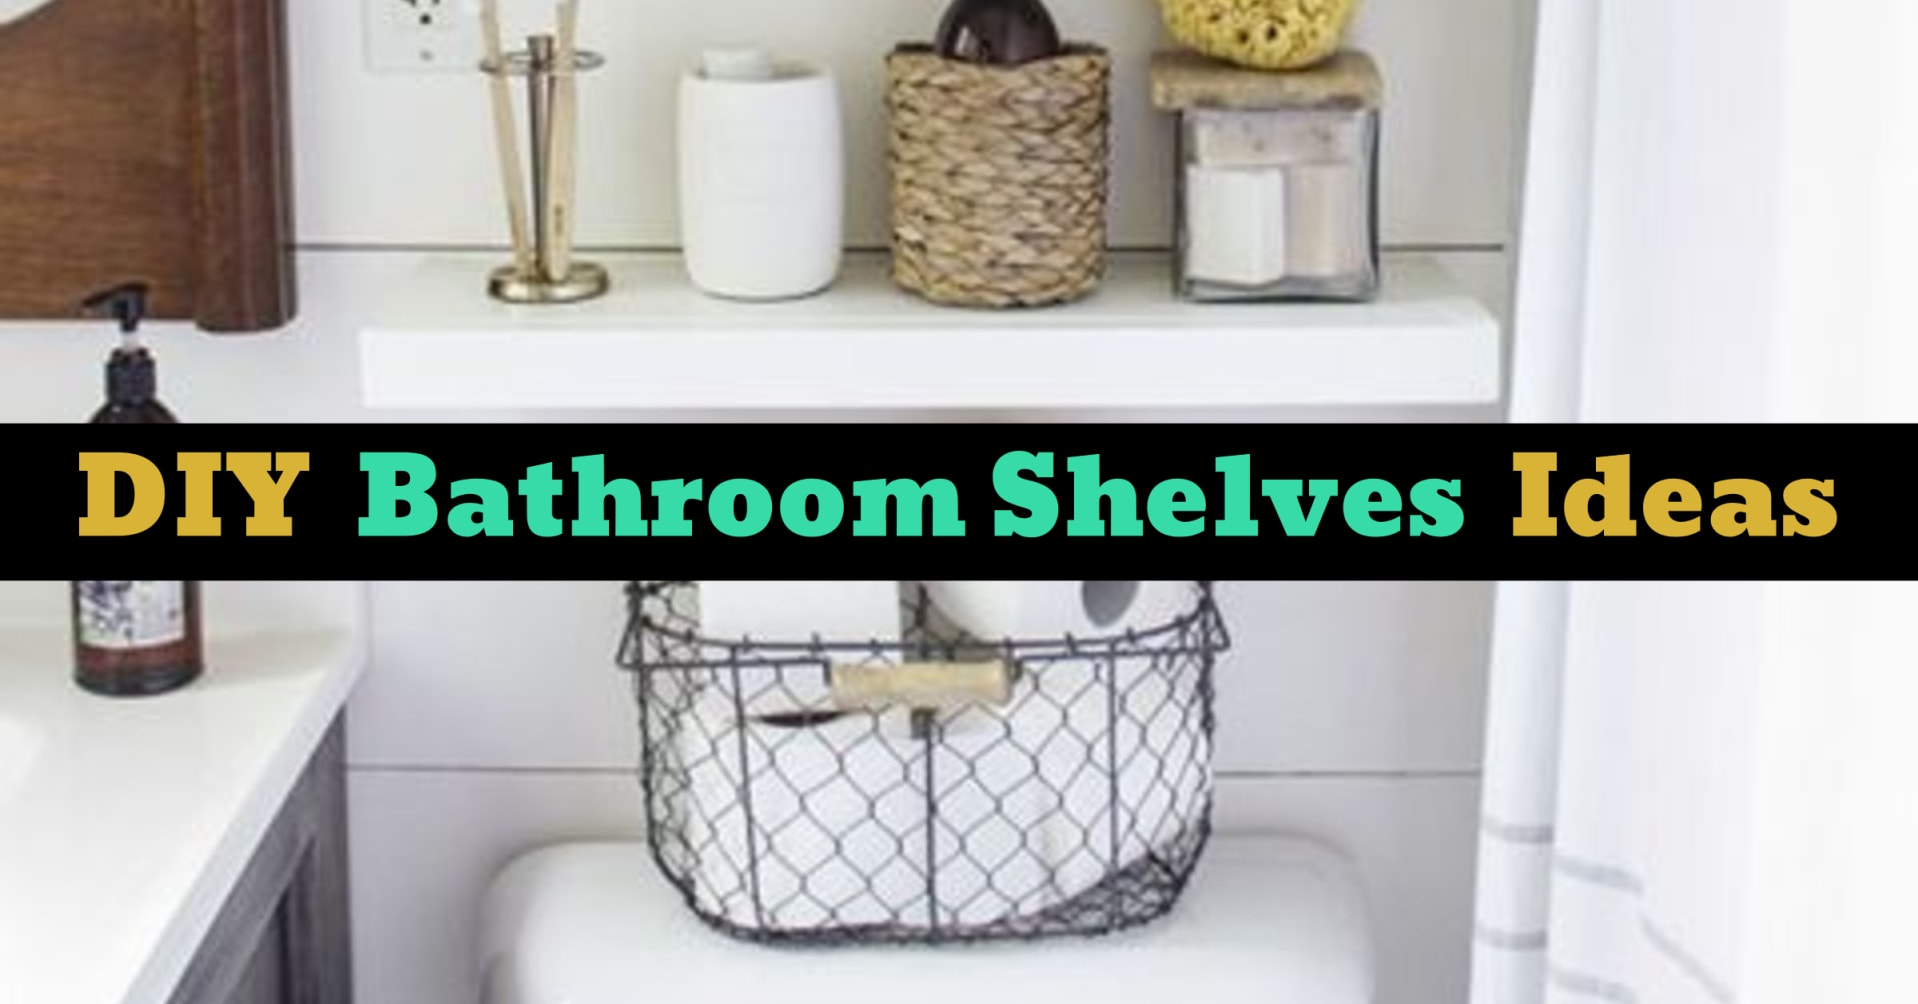 Bathroom Shelves Ideas - Small Bathroom Shelf Ideas For Creative Bathroom Storage On a Budget